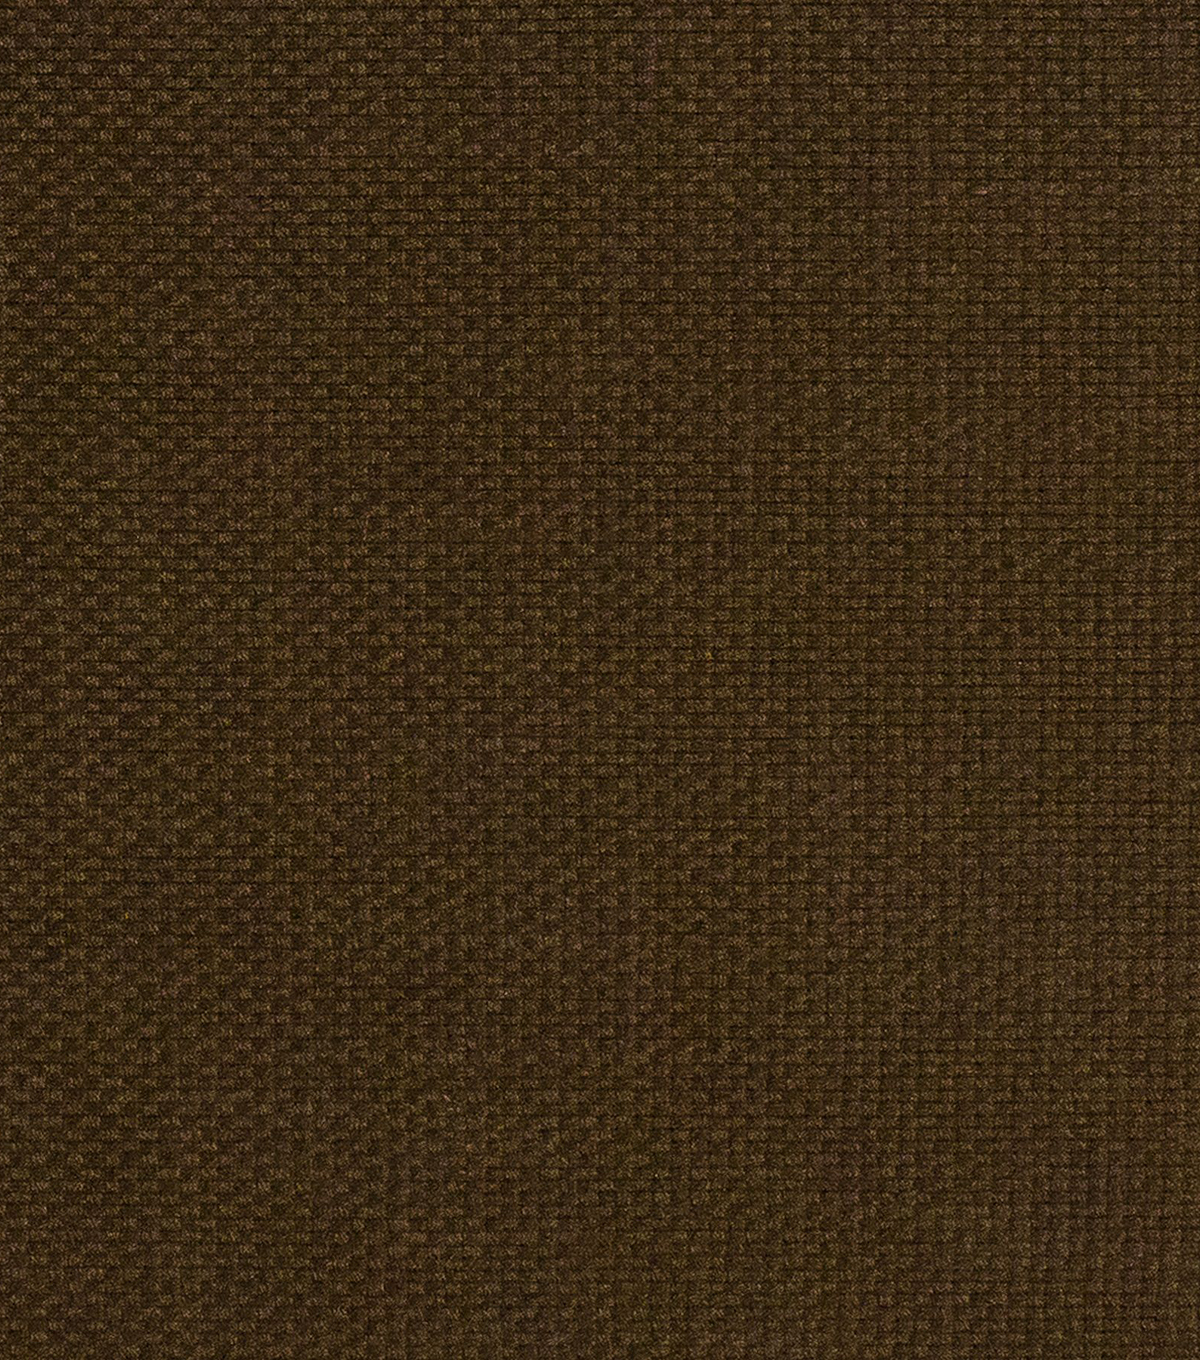 Home Decor 8\u0022x8\u0022 Fabric Swatch-Elite Olympia Cappuccino